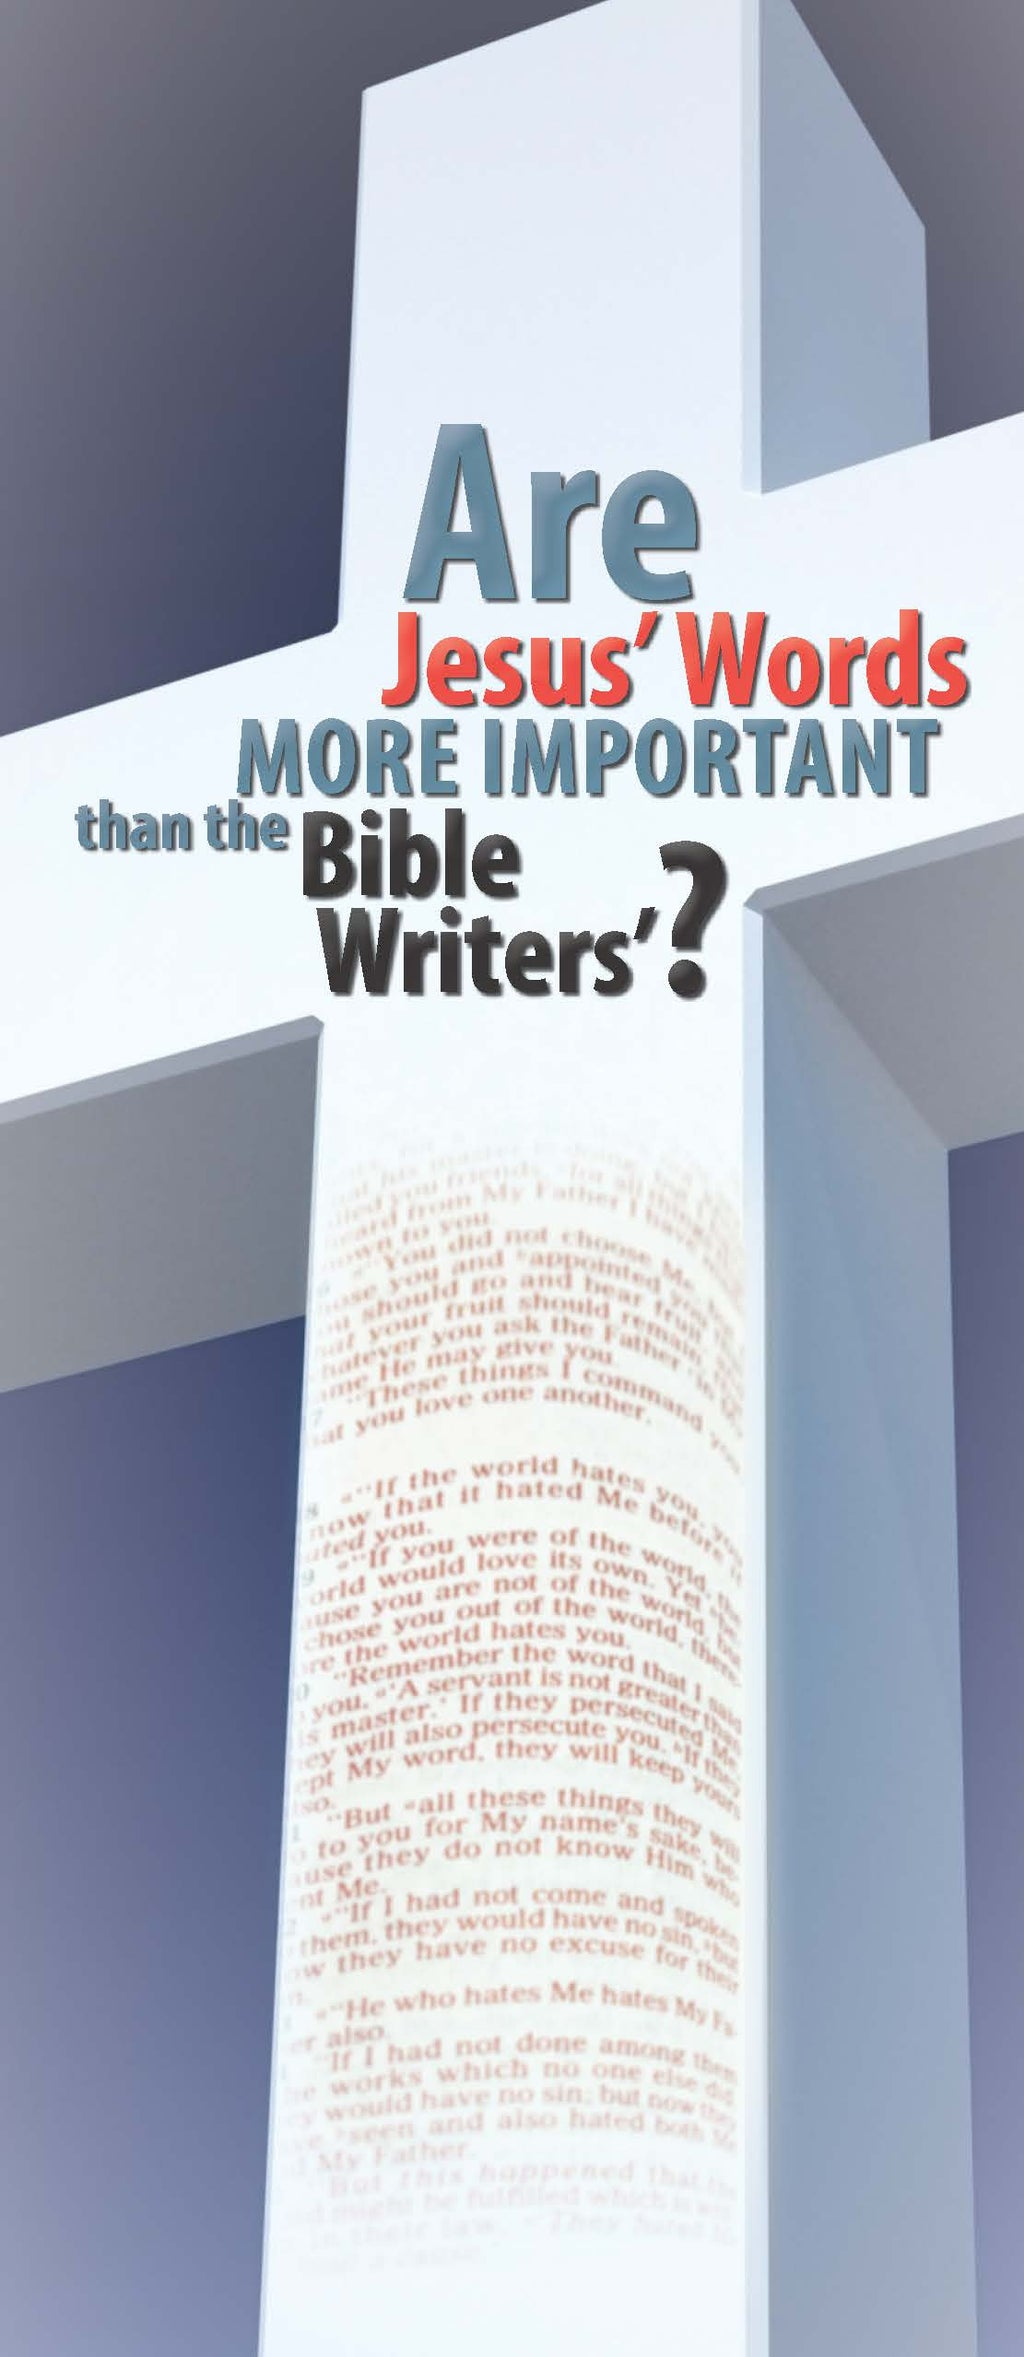 Are Jesus' Words More Important than the Bible Writers?